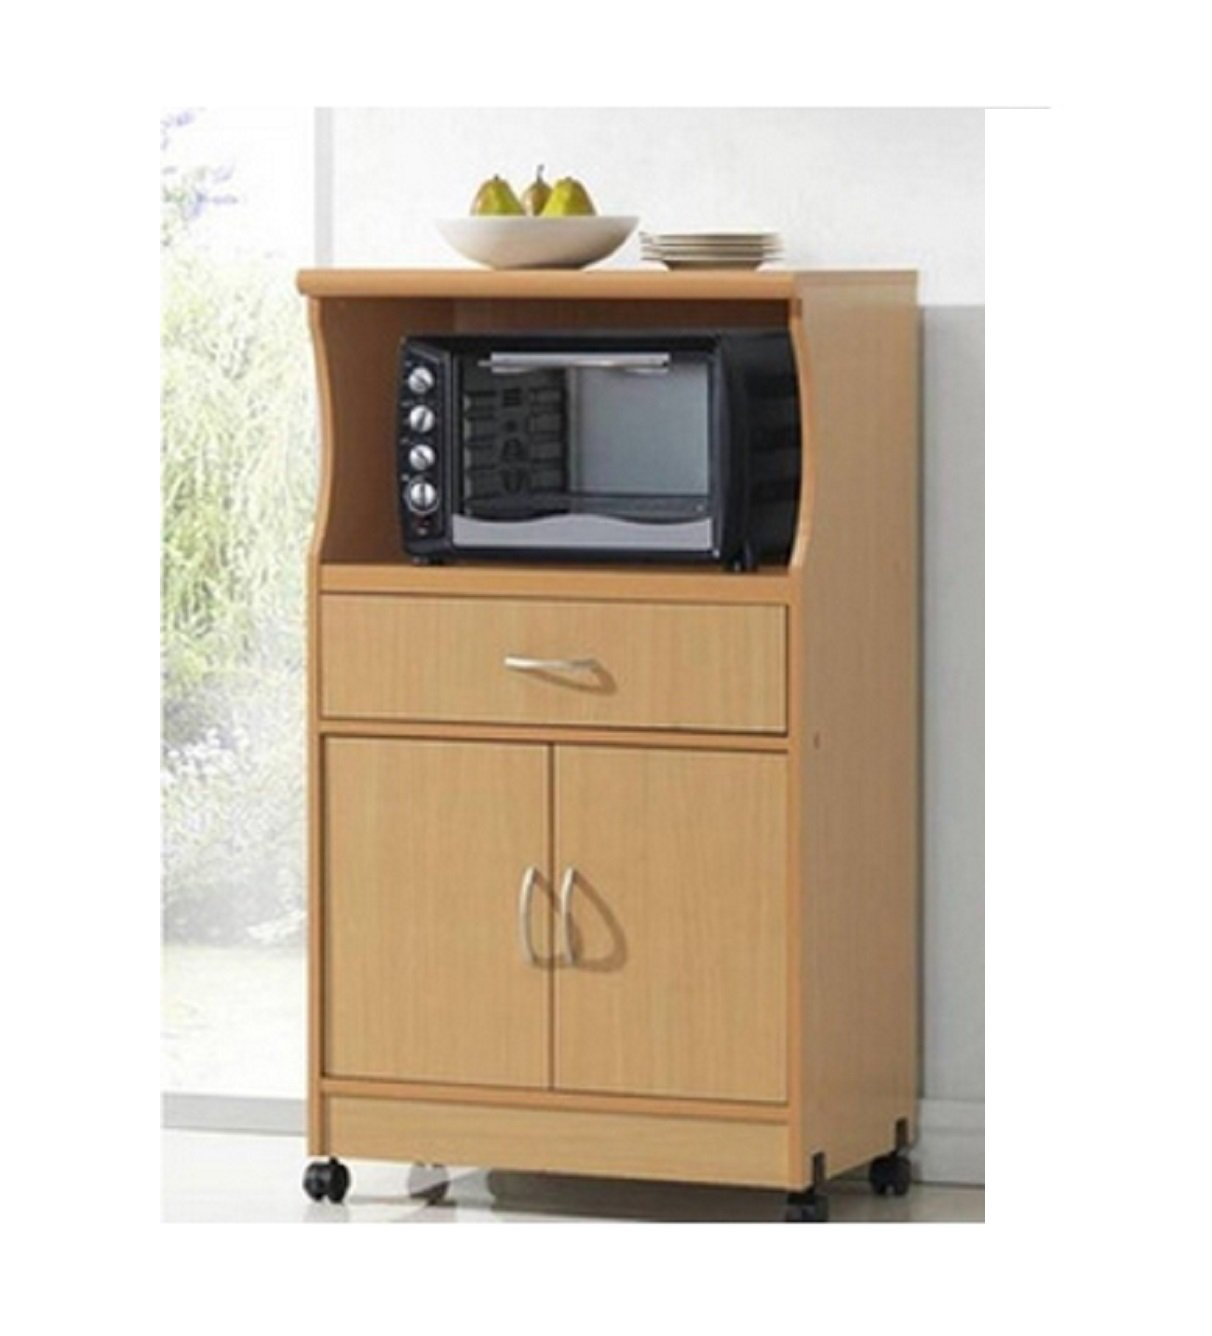 Amazon.com: Microwave Cart Stand   Beech Finish   One Shelf For The  Microwave And Another Shelf Above Plus A Drawer And Cabinet Below: Kitchen  U0026 Dining